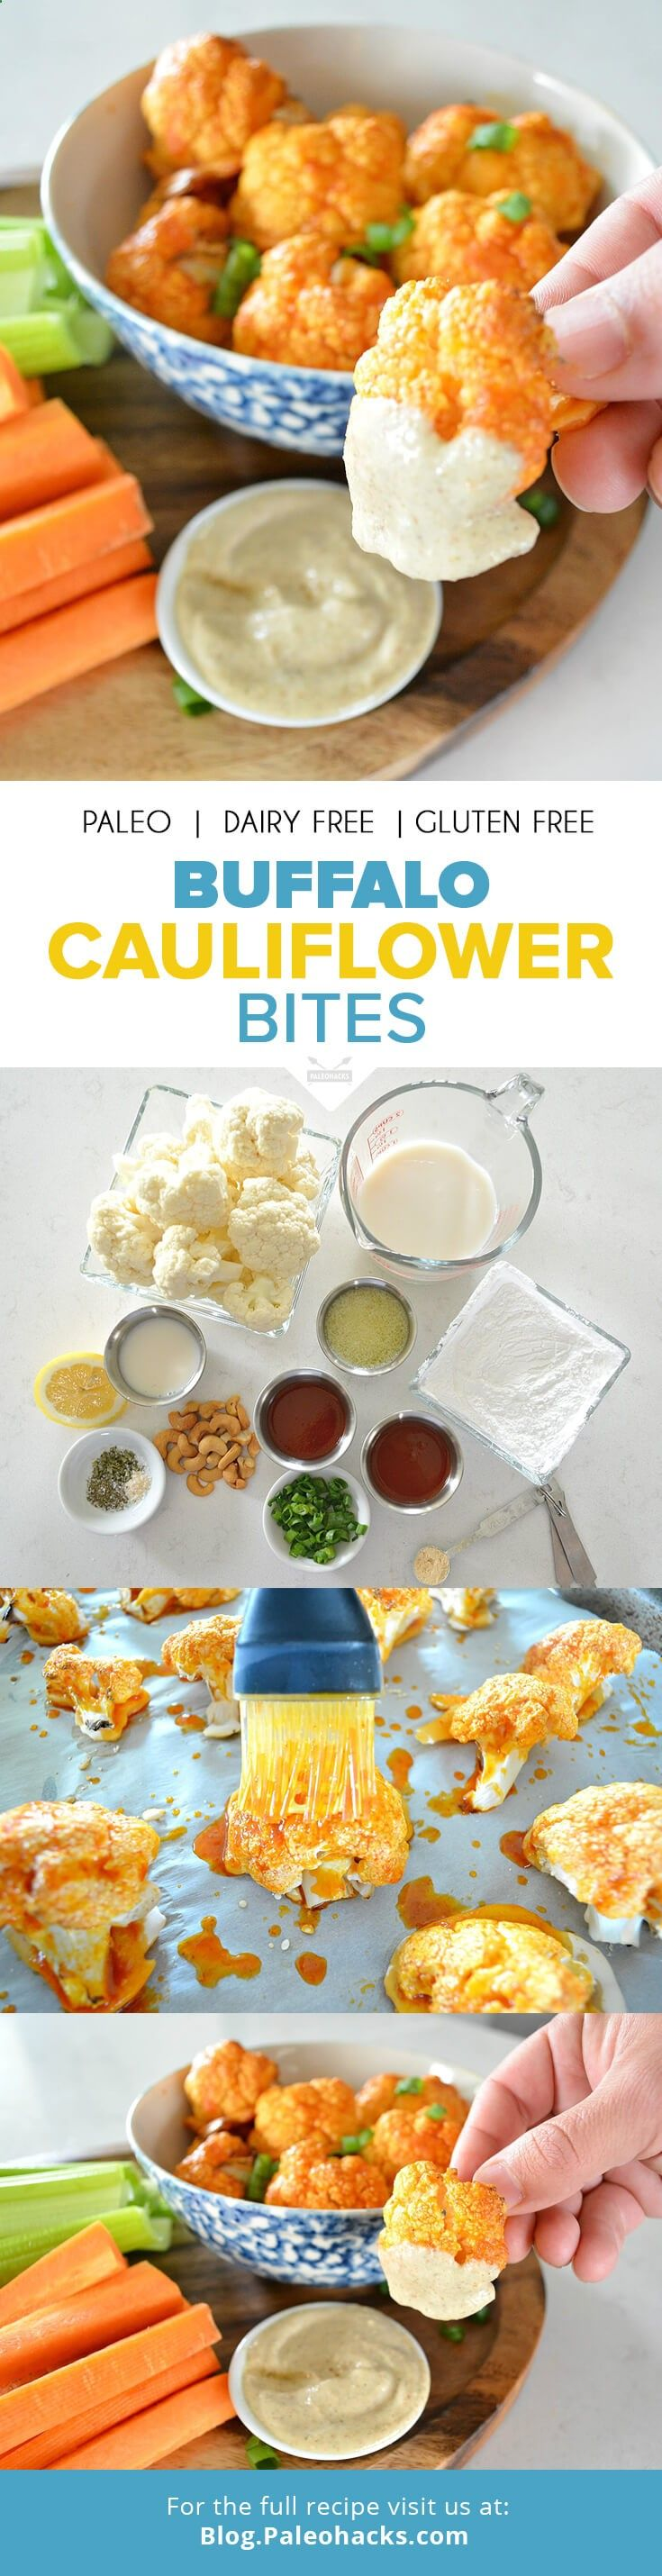 All the spicy buffalo flavor you love about chicken wings are now jam-packed in a healthy and oh-so Paleo cauliflower bite. Oven-baked instead of fried, these crispy nuggets make the perfect snack for Vegan and Paleo eaters alike. For the full recipe visit us here: paleo.co/CauliBites #paleohacks #paleo